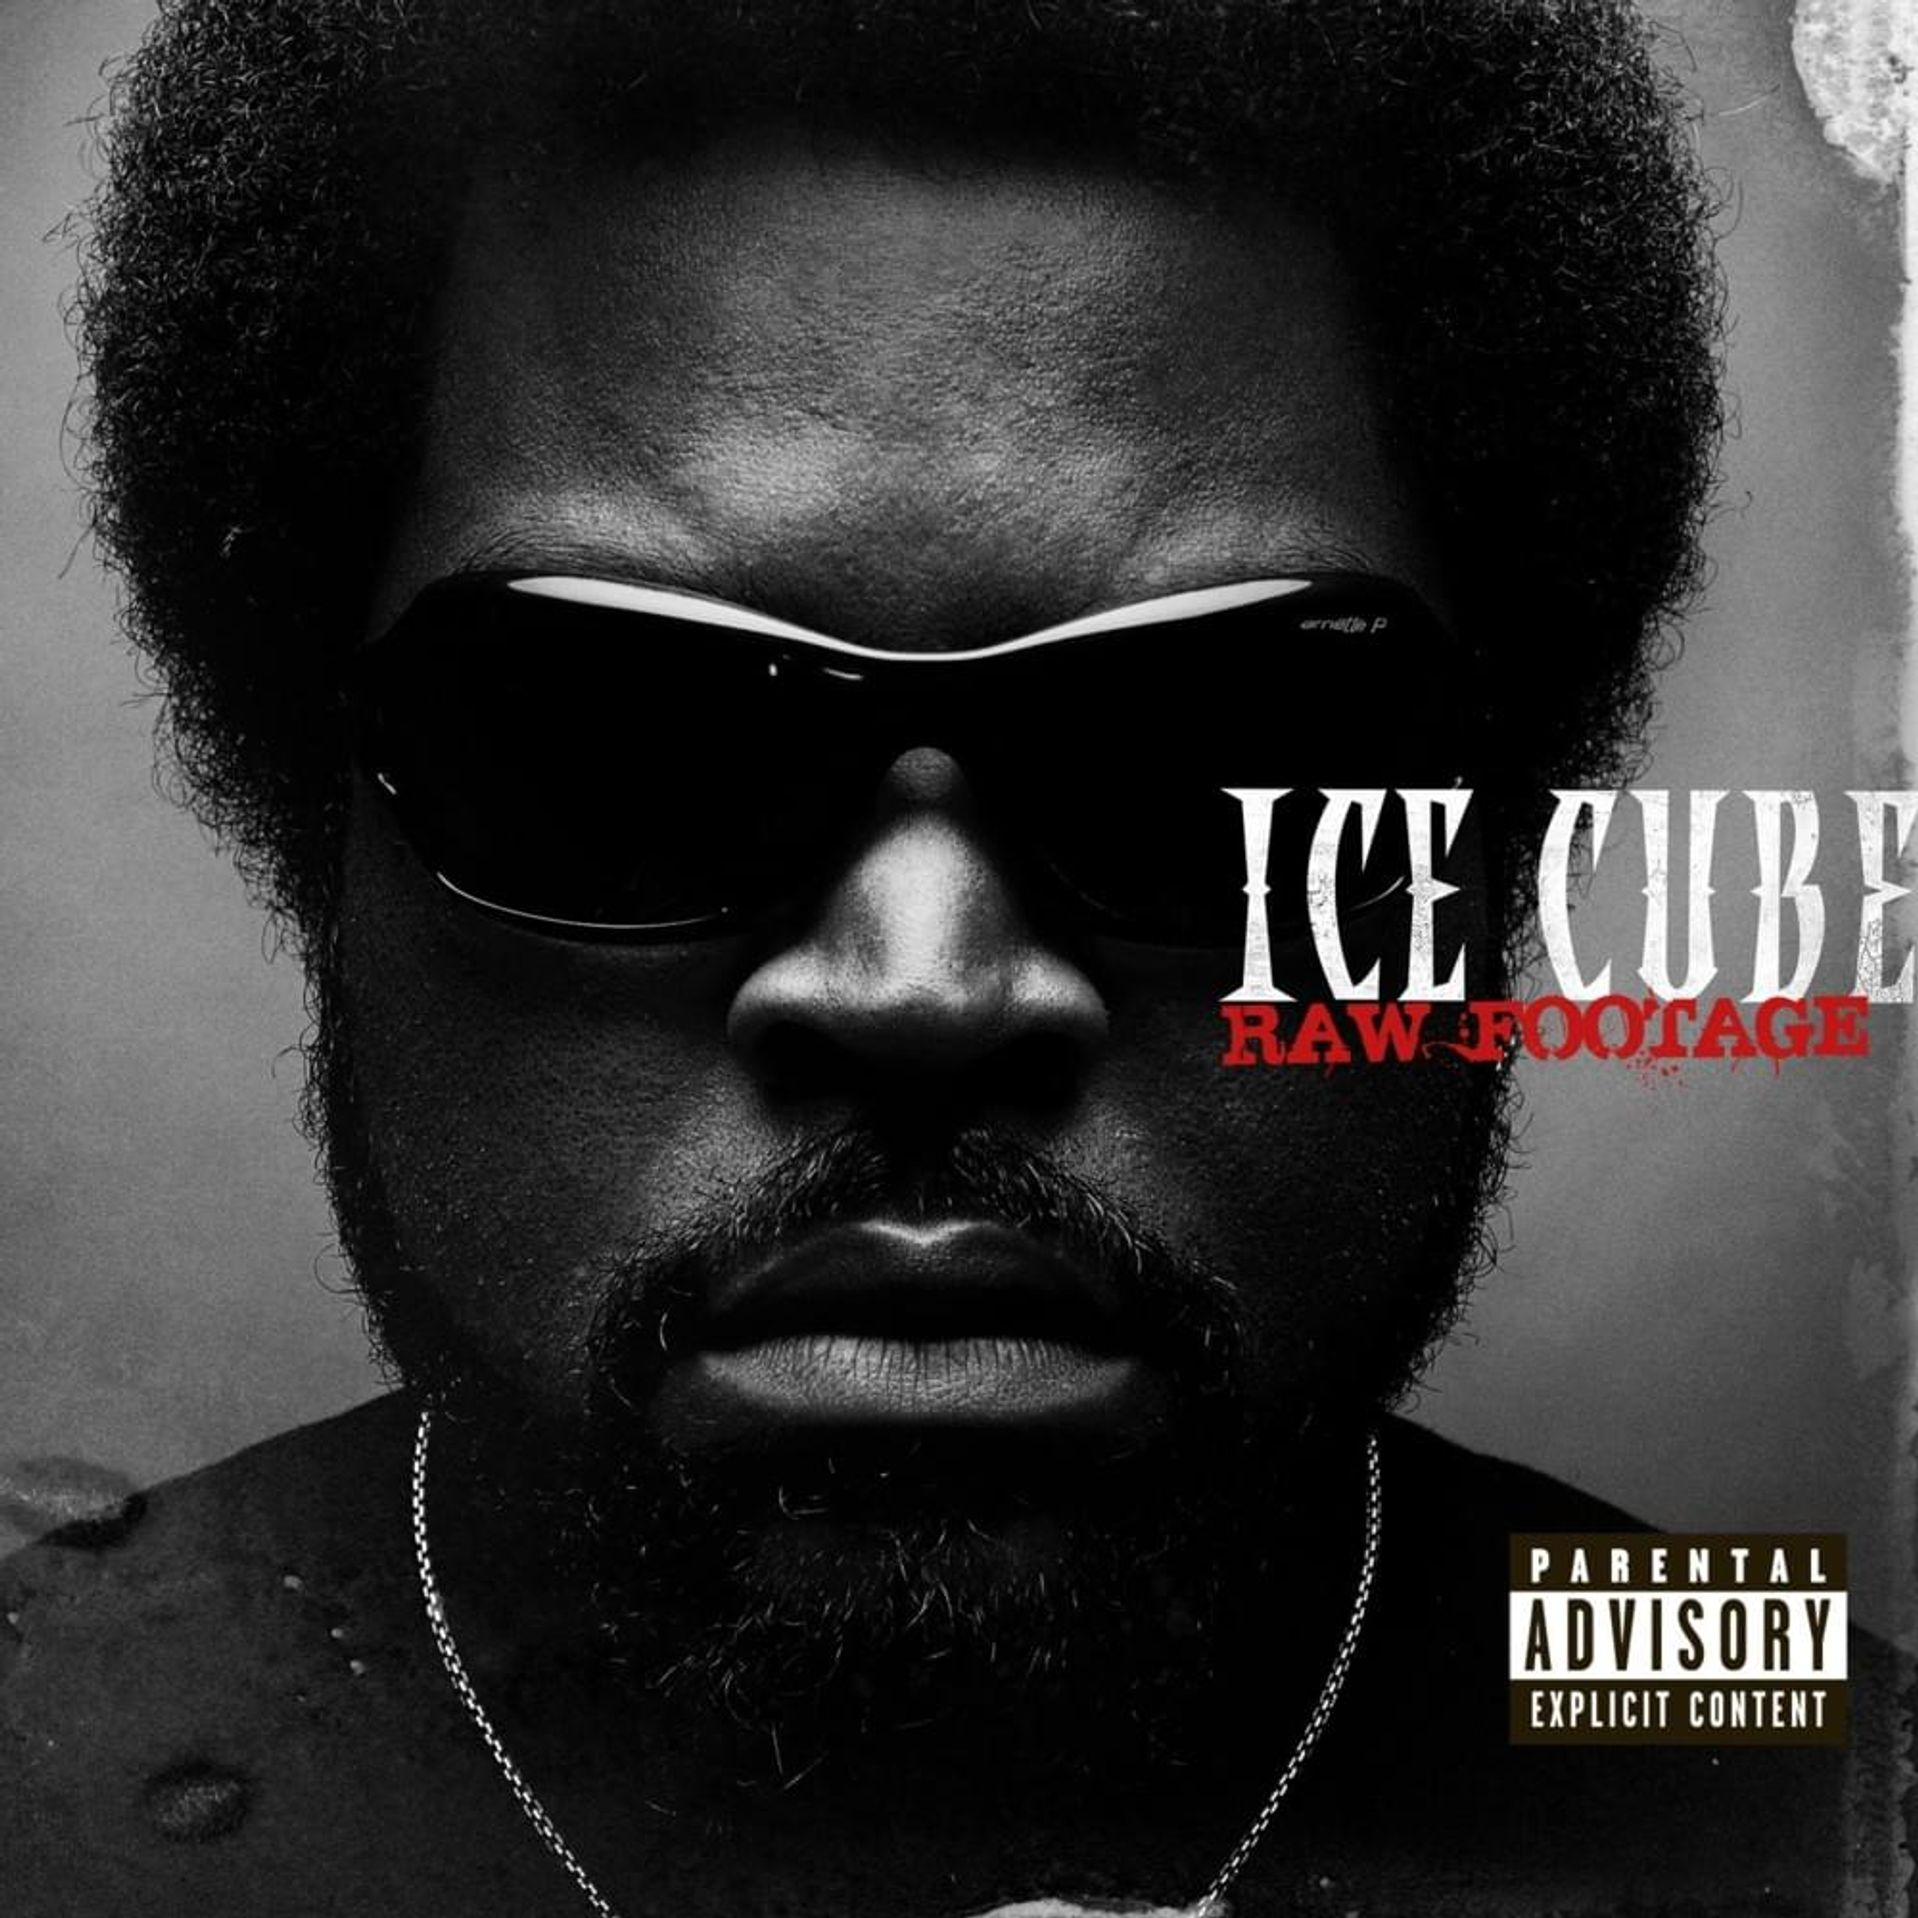 Album Title: Raw Footage by: Ice Cube